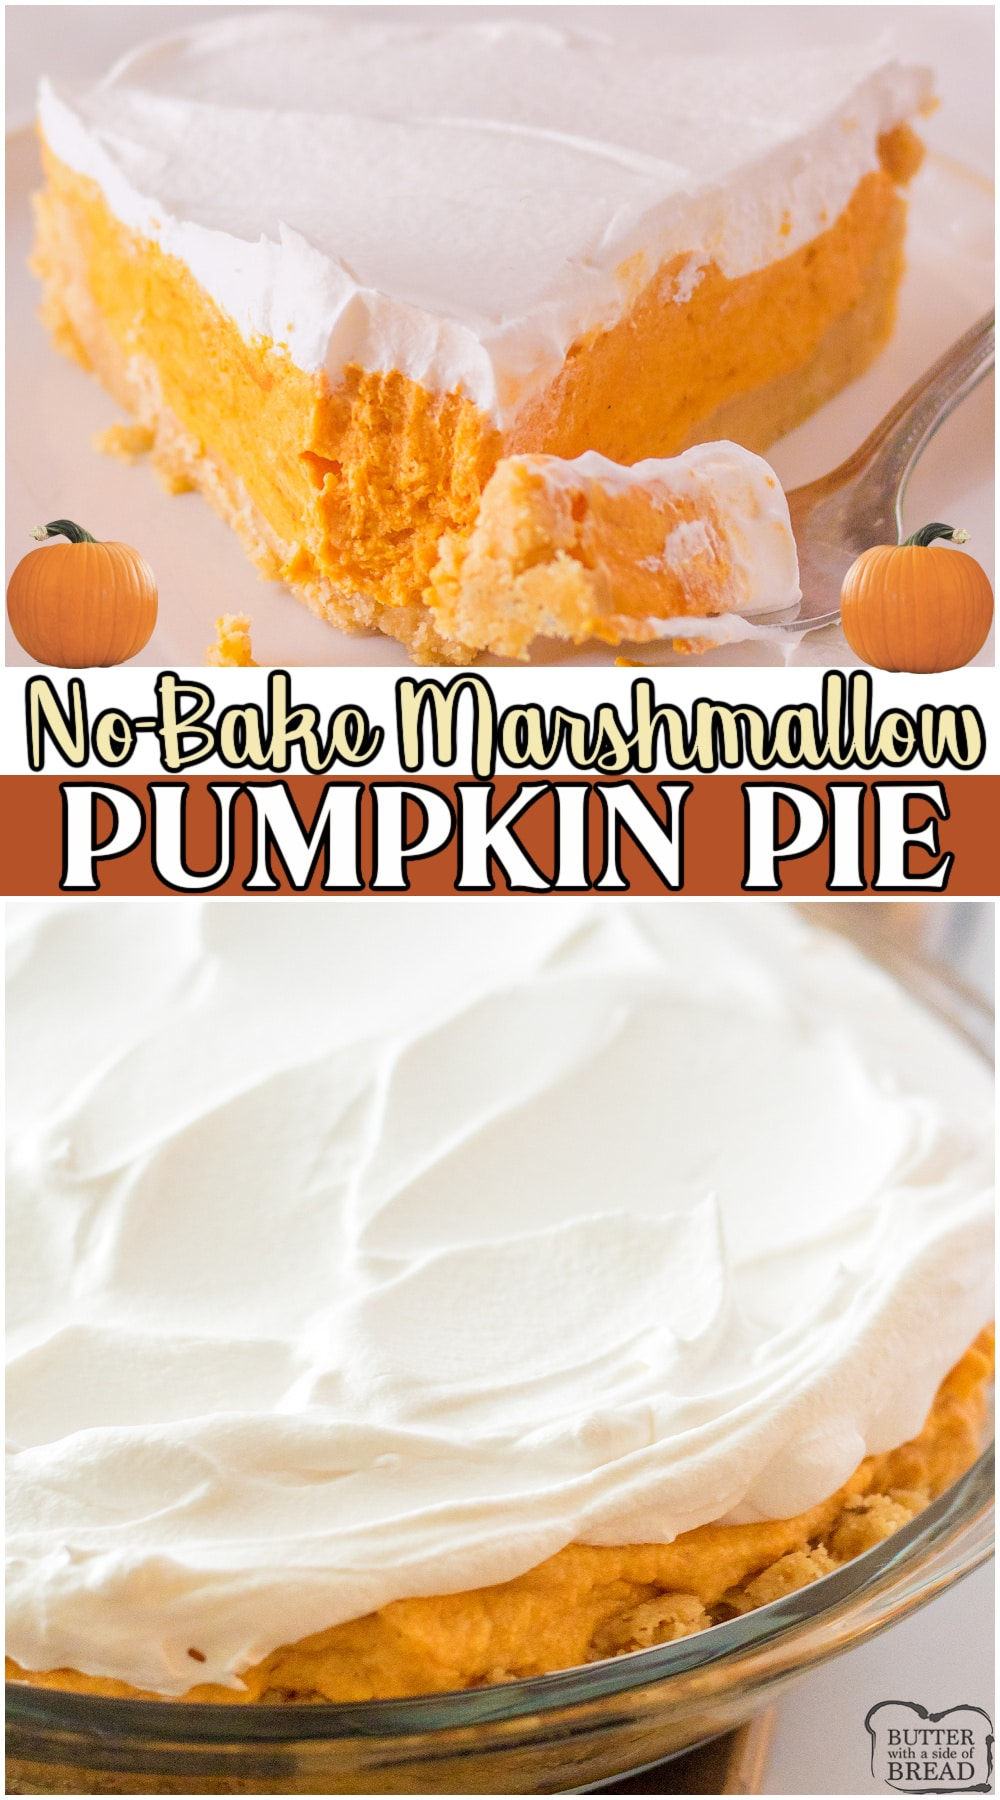 Pumpkin marshmallow pie made with pumpkin, marshmallow fluff, Pecan Sandies, warm Fall spices & Cool Whip. Delightful no-bake pumpkin pie with a spiced creamy pumpkin filling that everyone loves! #pumpkin #pie #nobake #easyrecipe from BUTTER WITH A SIDE OF BREAD